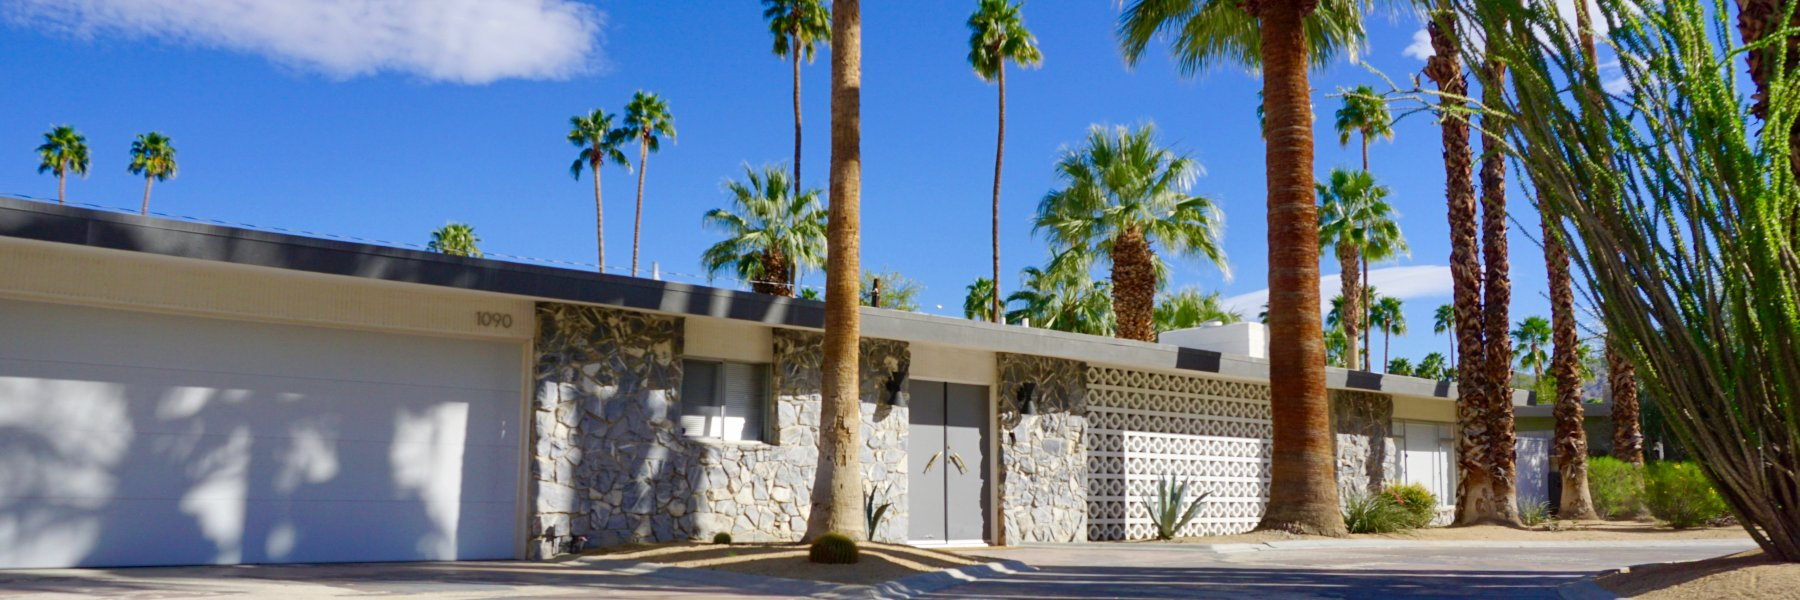 Deepwell Estates is a community of homes in Palm Springs California